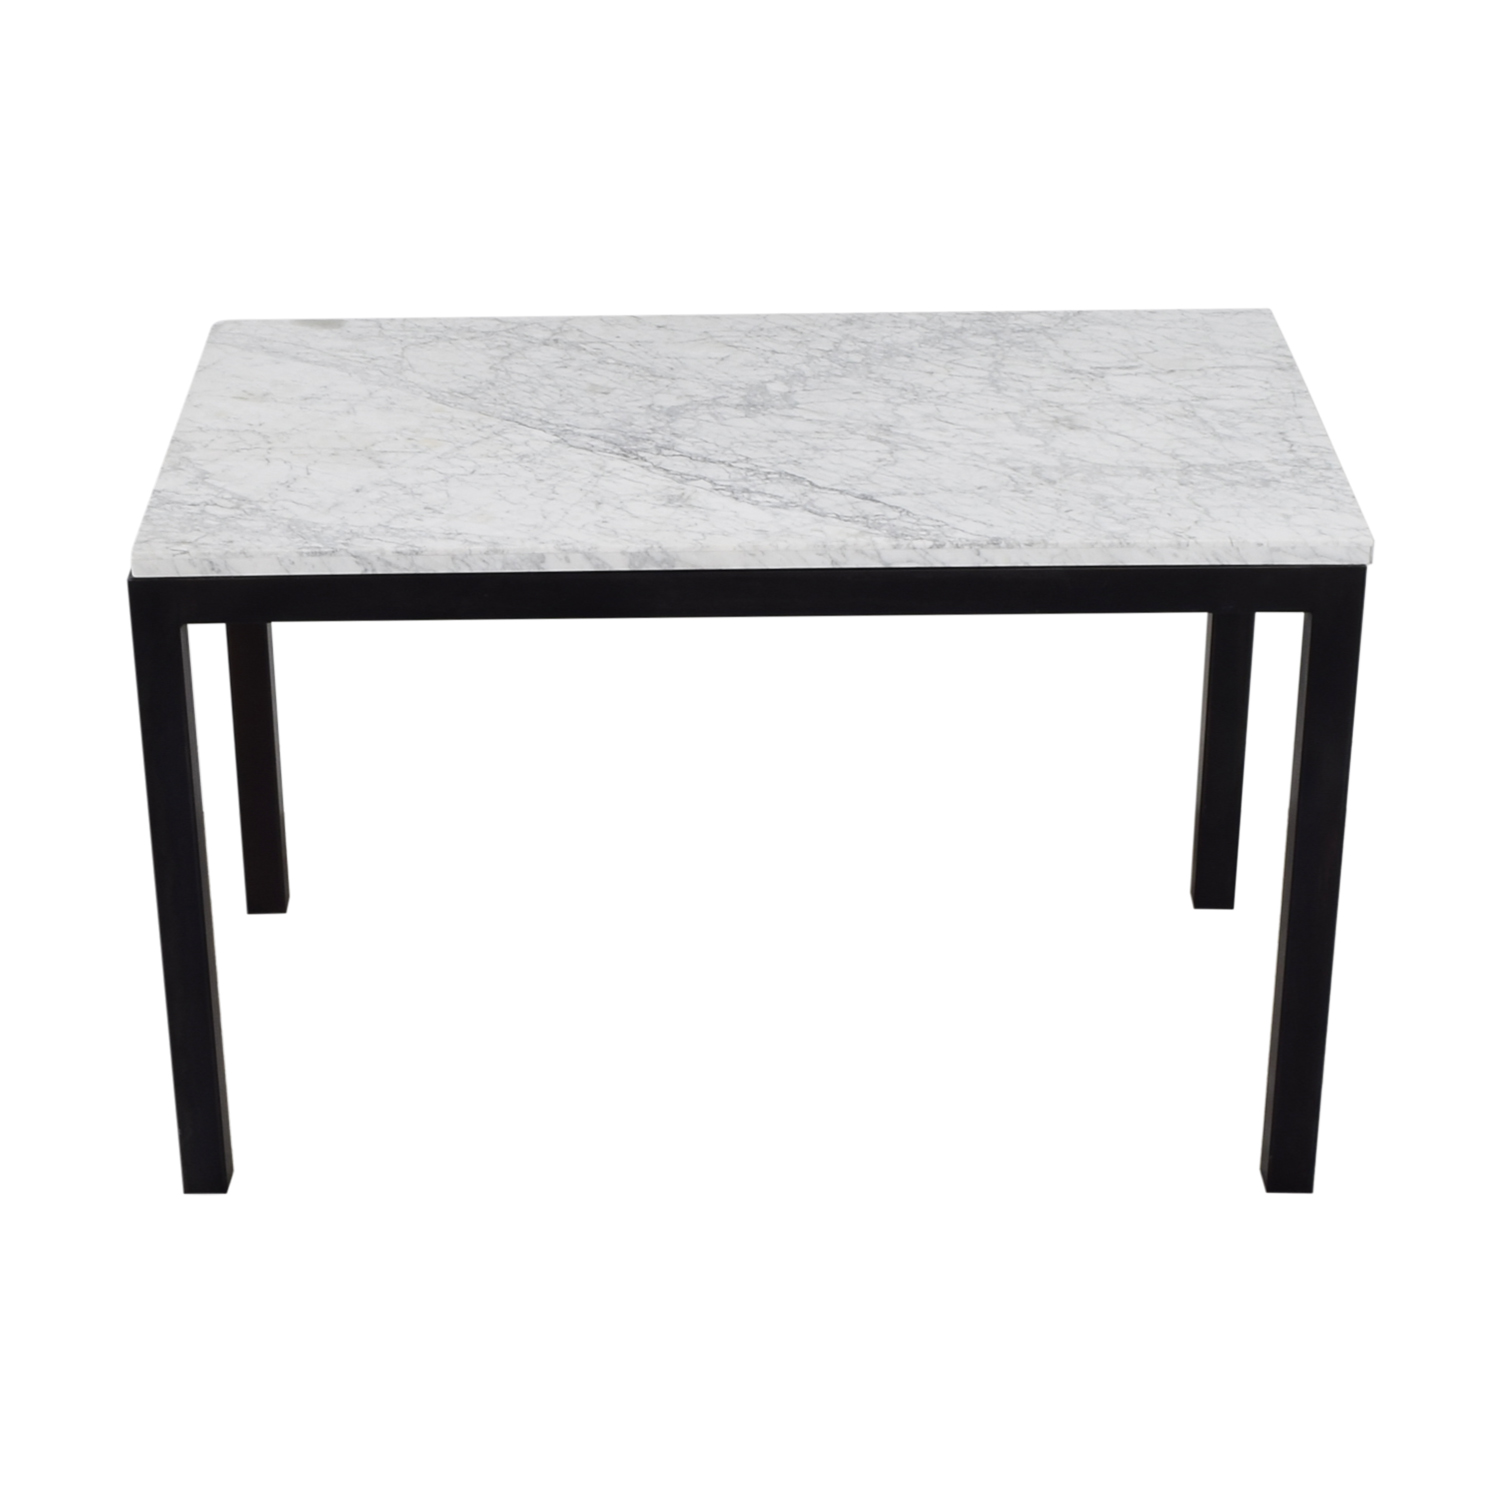 Crate & Barrel Crate & Barrel Parsons Marble Top Steel Base Dining Table nj